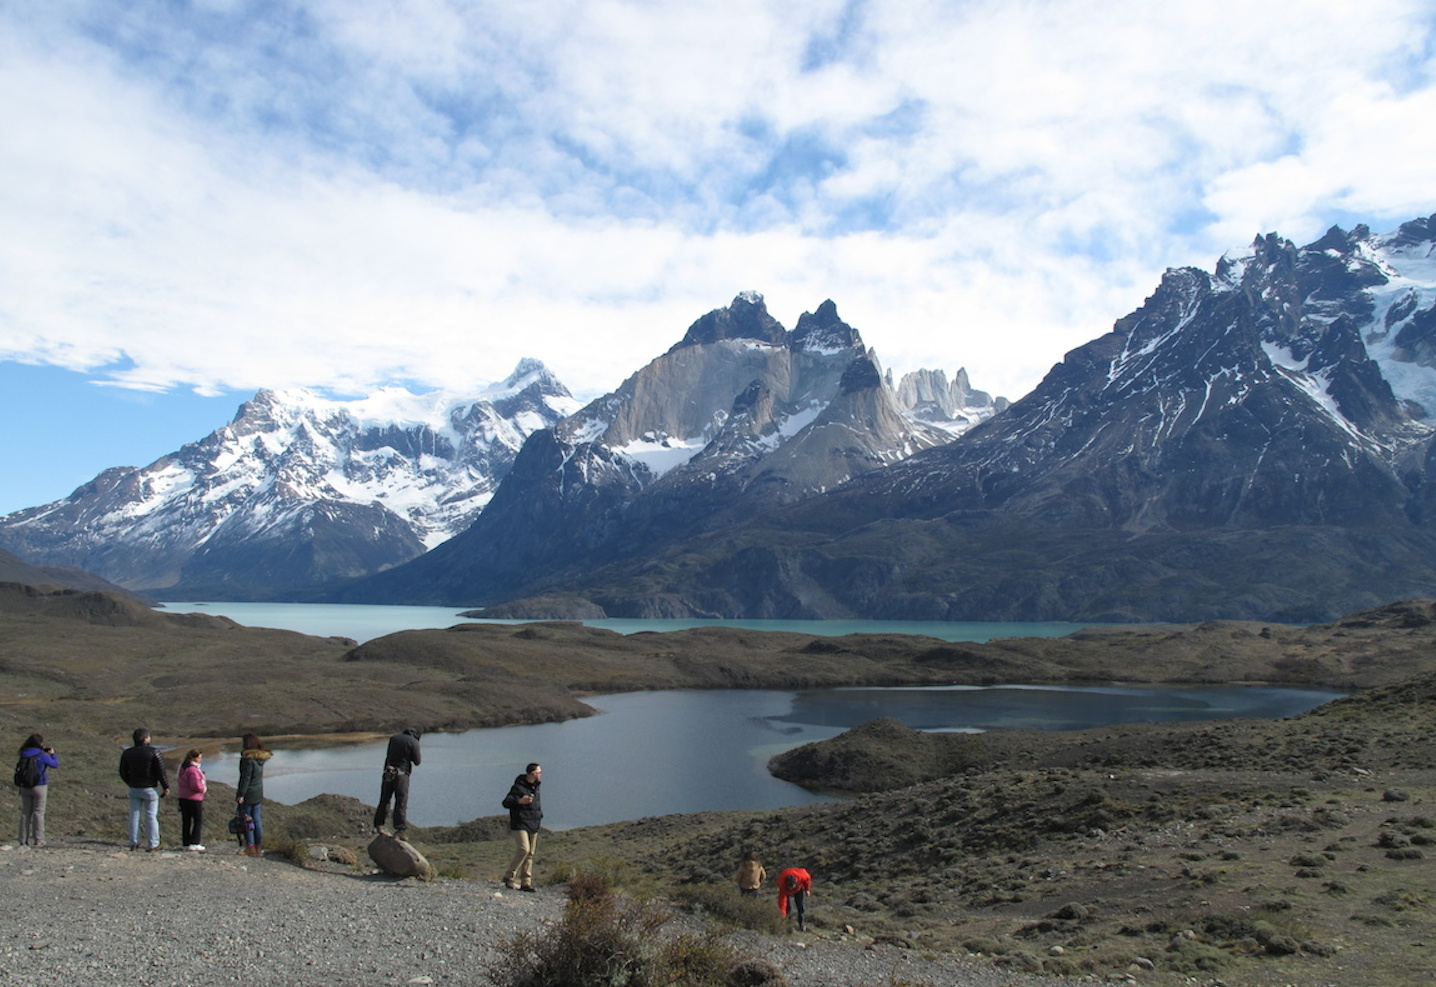 Trip to torres del paine